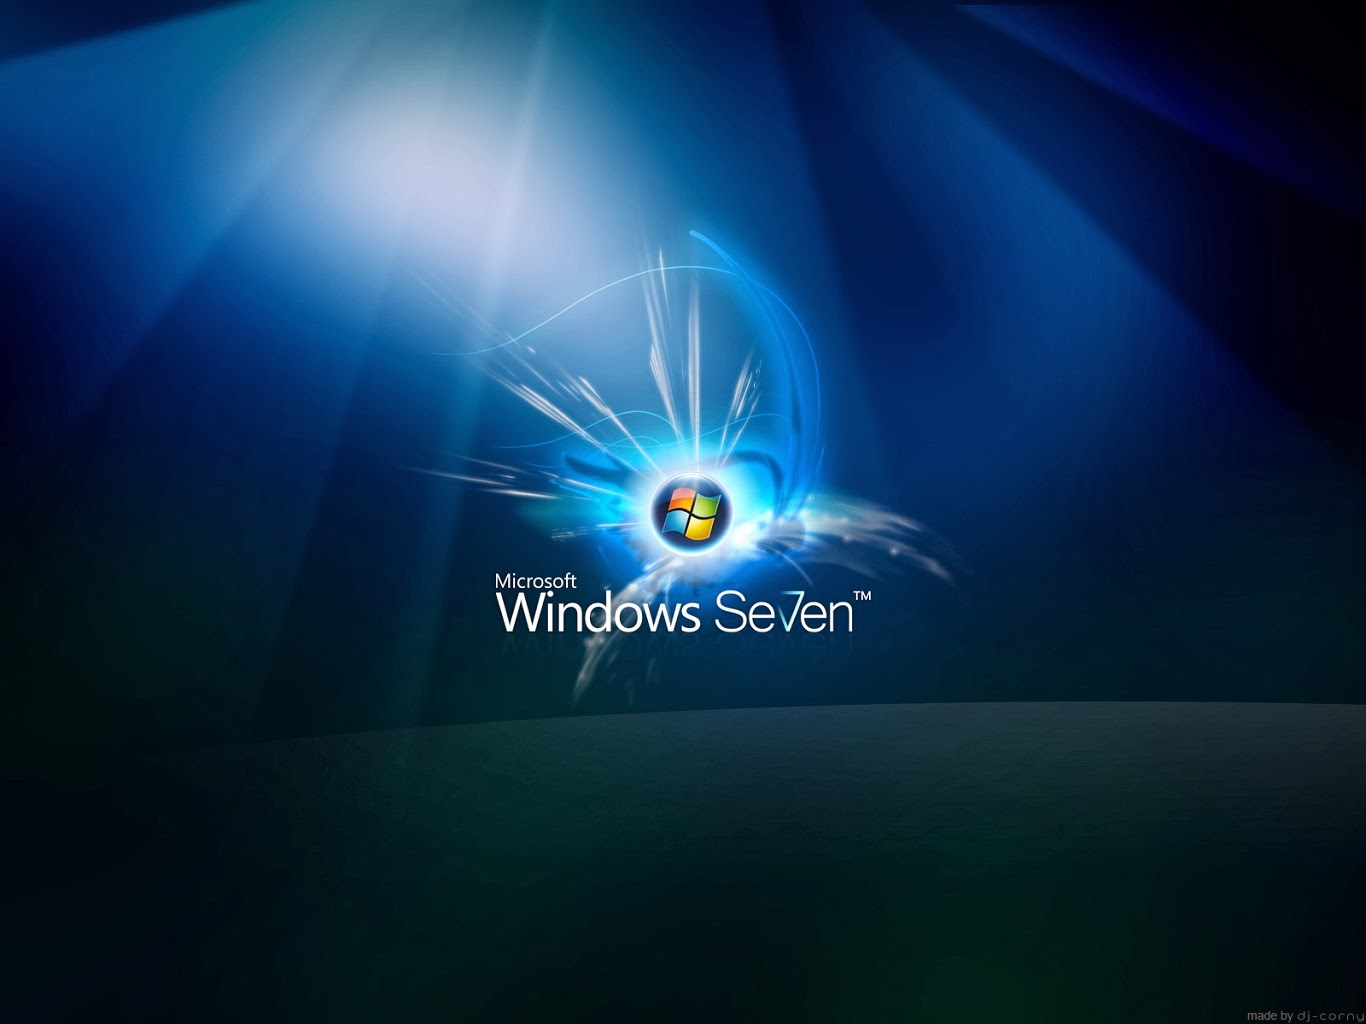 Windows 7 Ultimate 64 Bit Product Key List